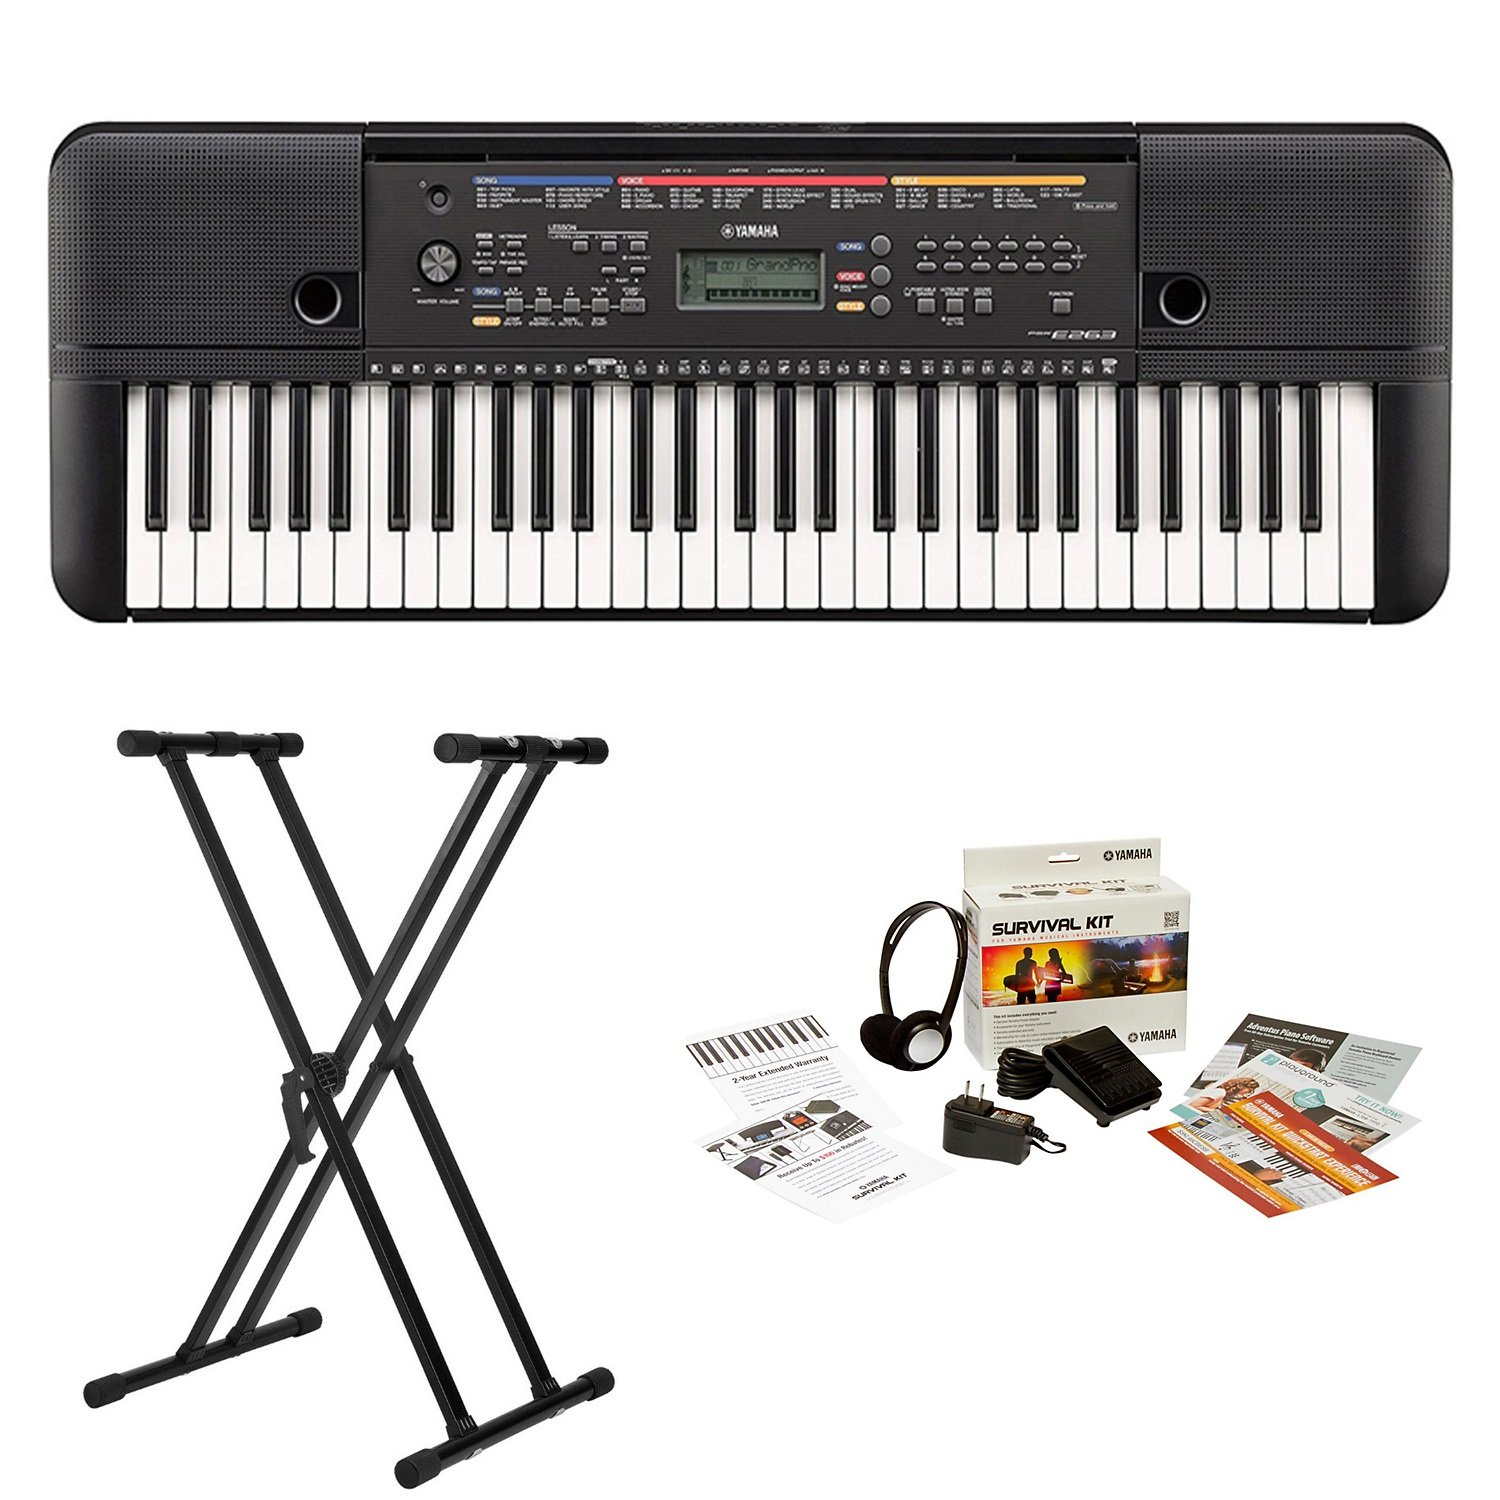 Yamaha PSRE263 61-Key Portable Keyboard with Knox Double X Stand and Survival kit (Includes Power Adapter and 2 Year Warranty) by YAMAHA